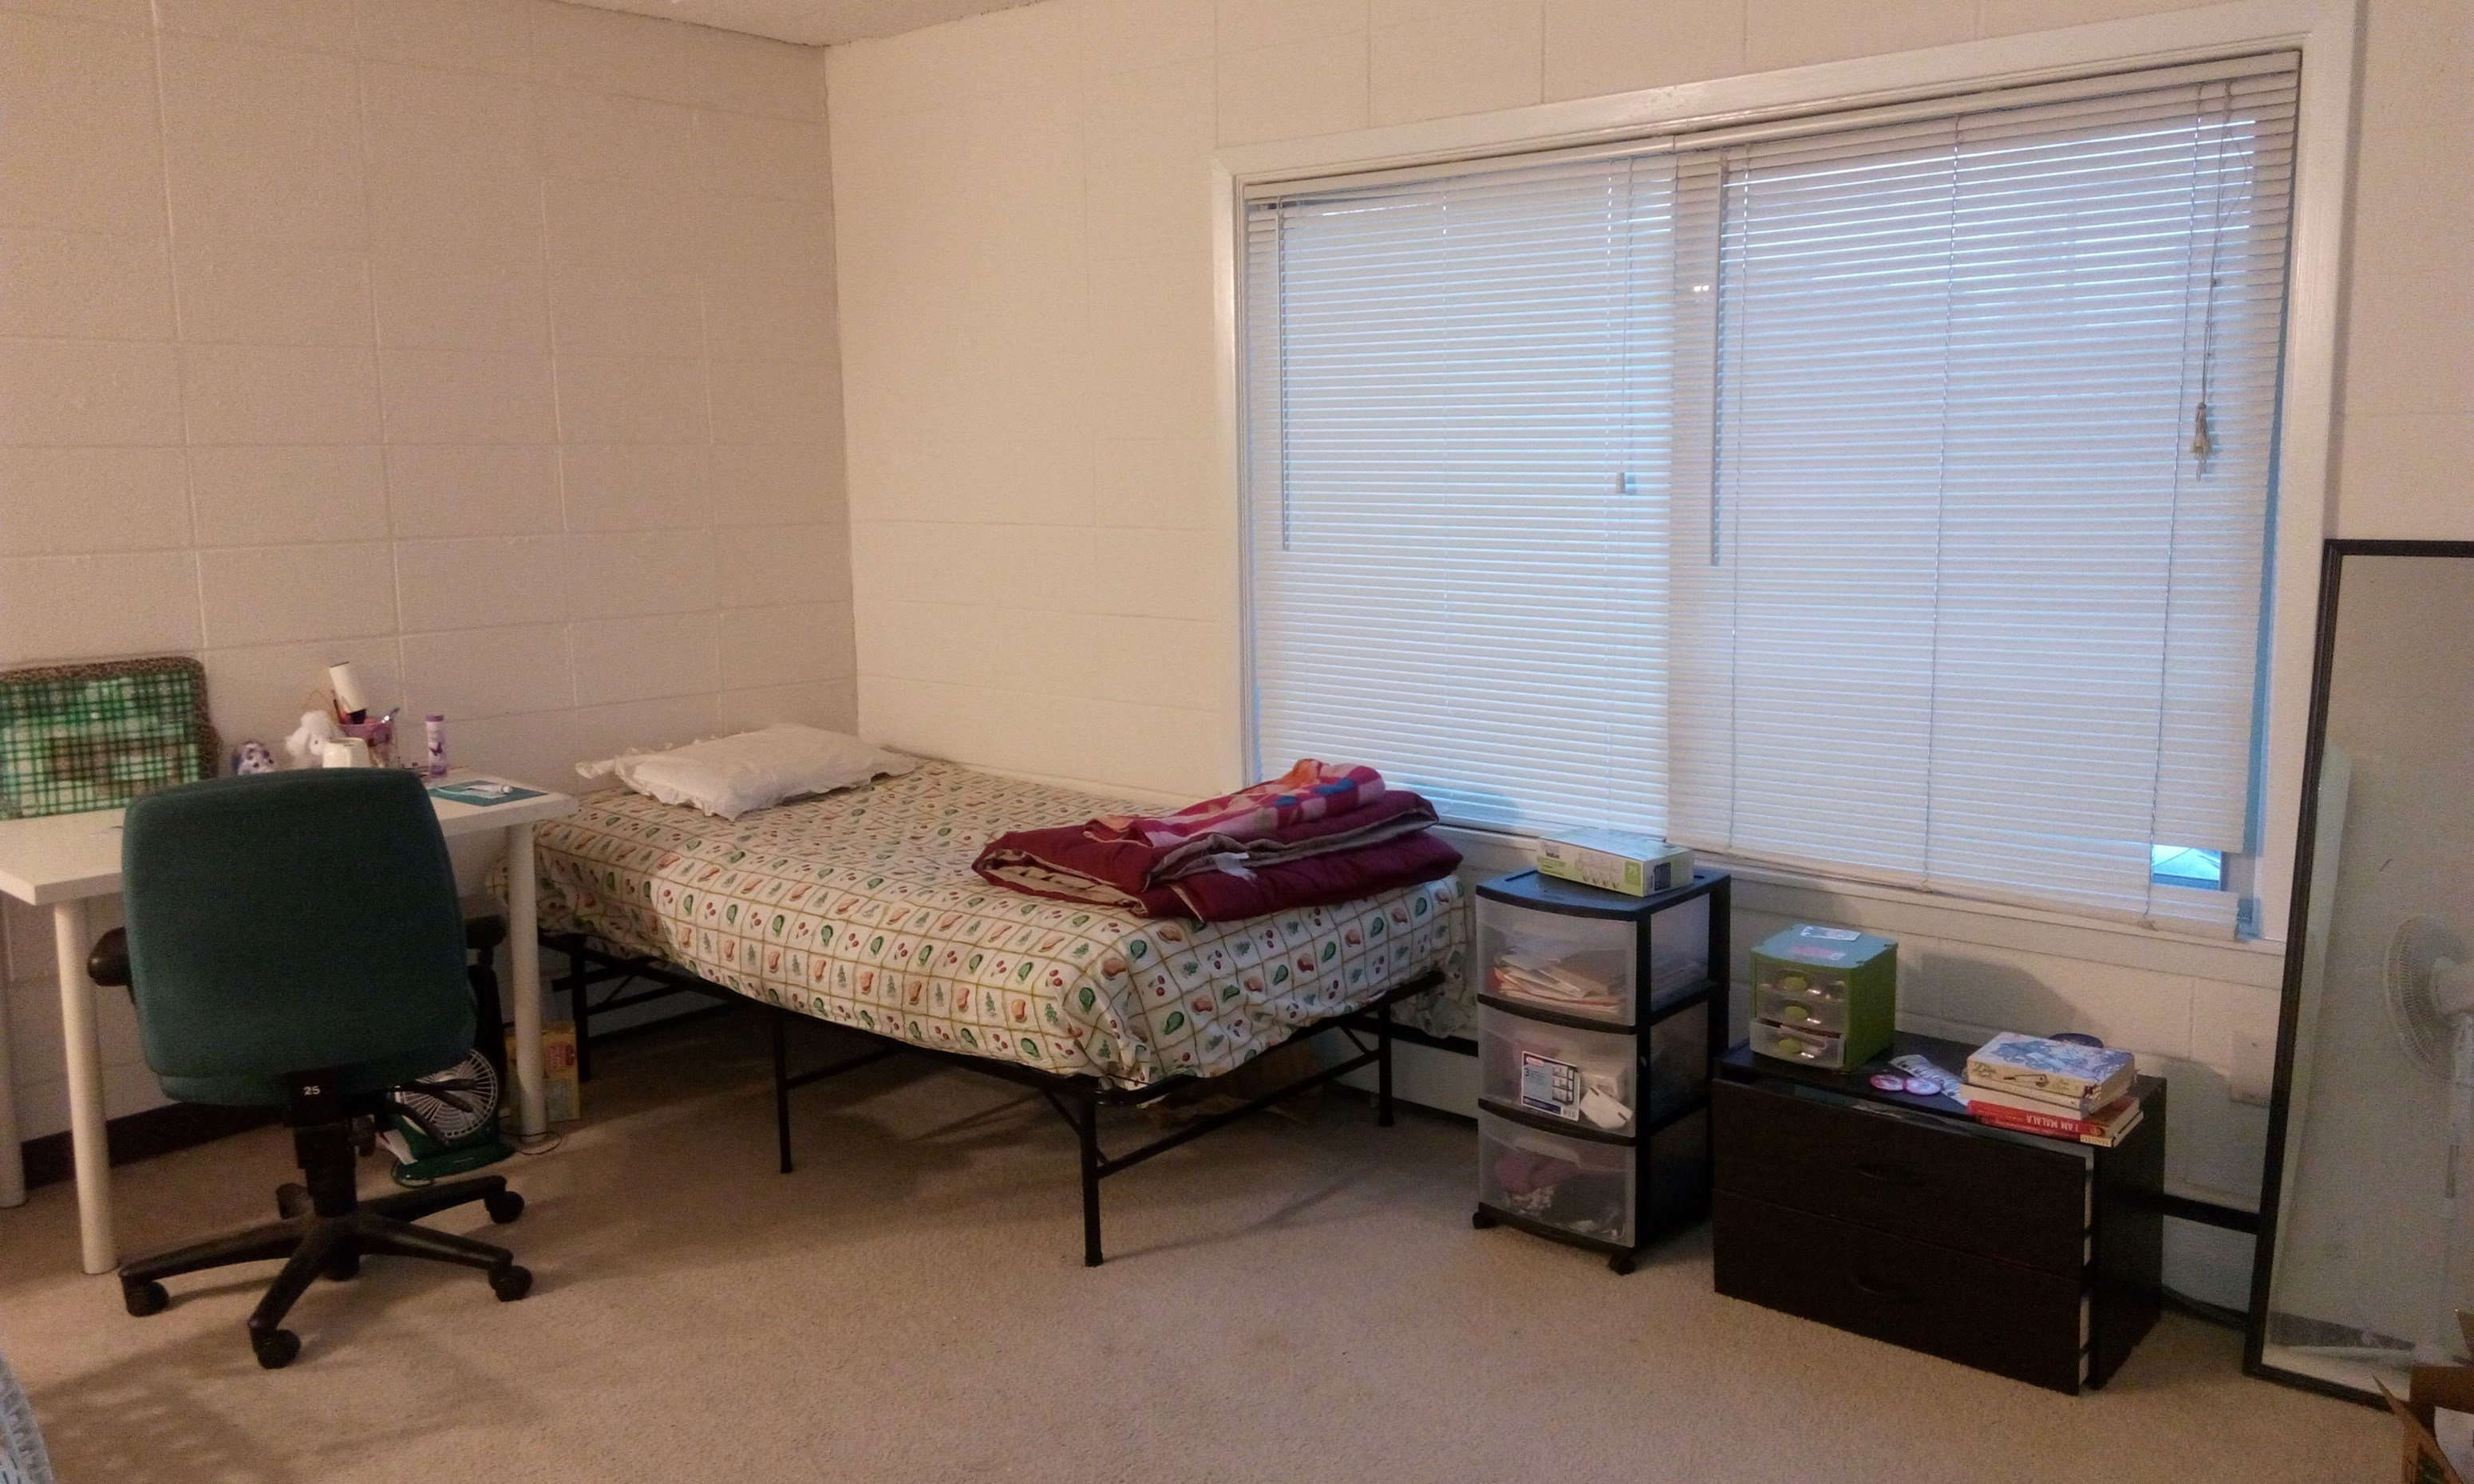 Best Looking To Sublet A 1 Bedroom Apartment Near University Of Minnesota In Minneapolis Mn 838409 With Pictures